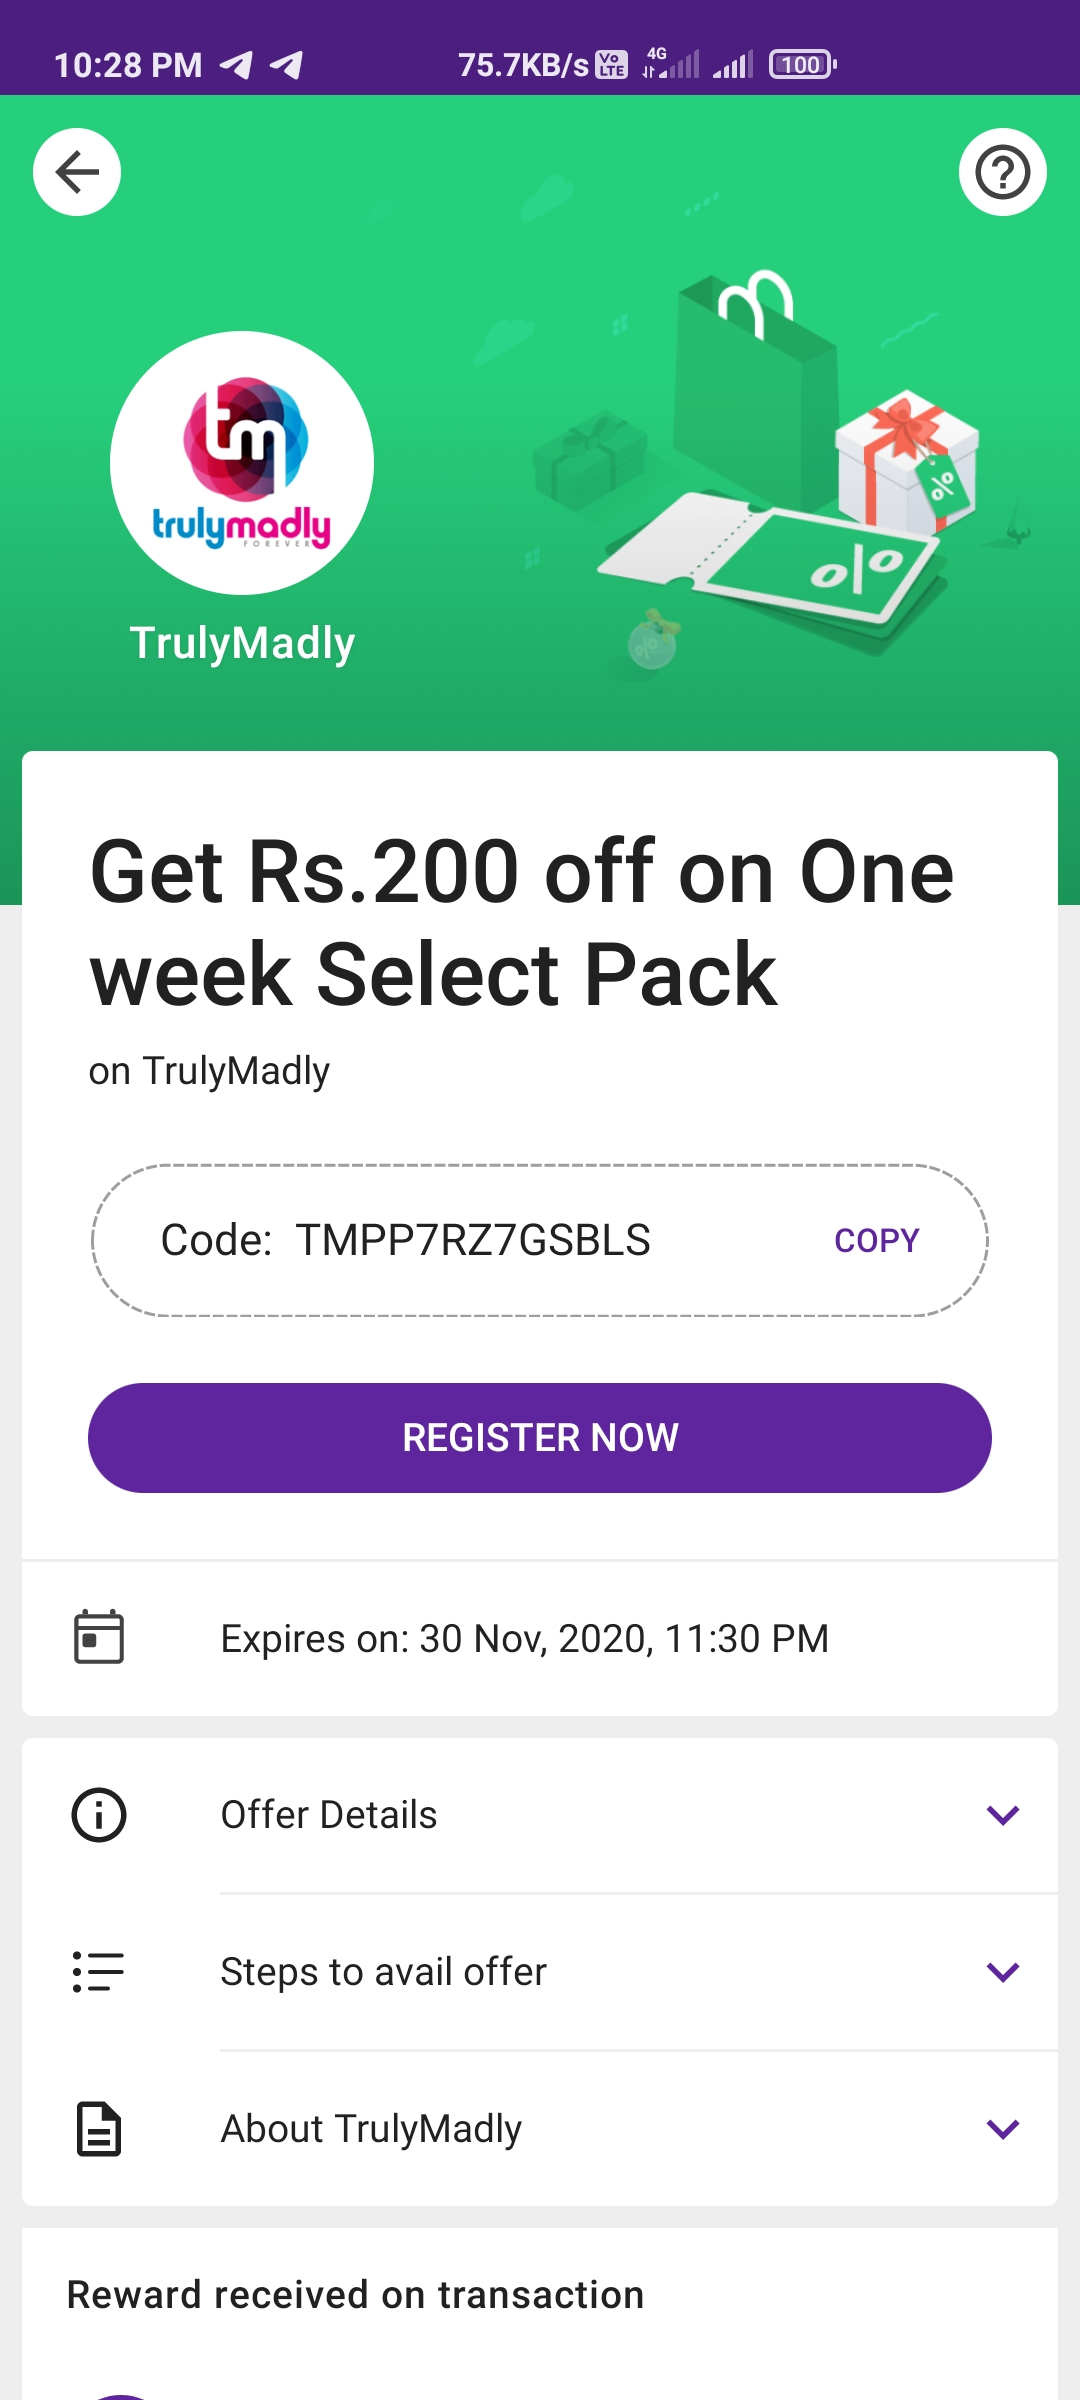 Trulymadly Free Select Pack Voucher By Phonepe Offer